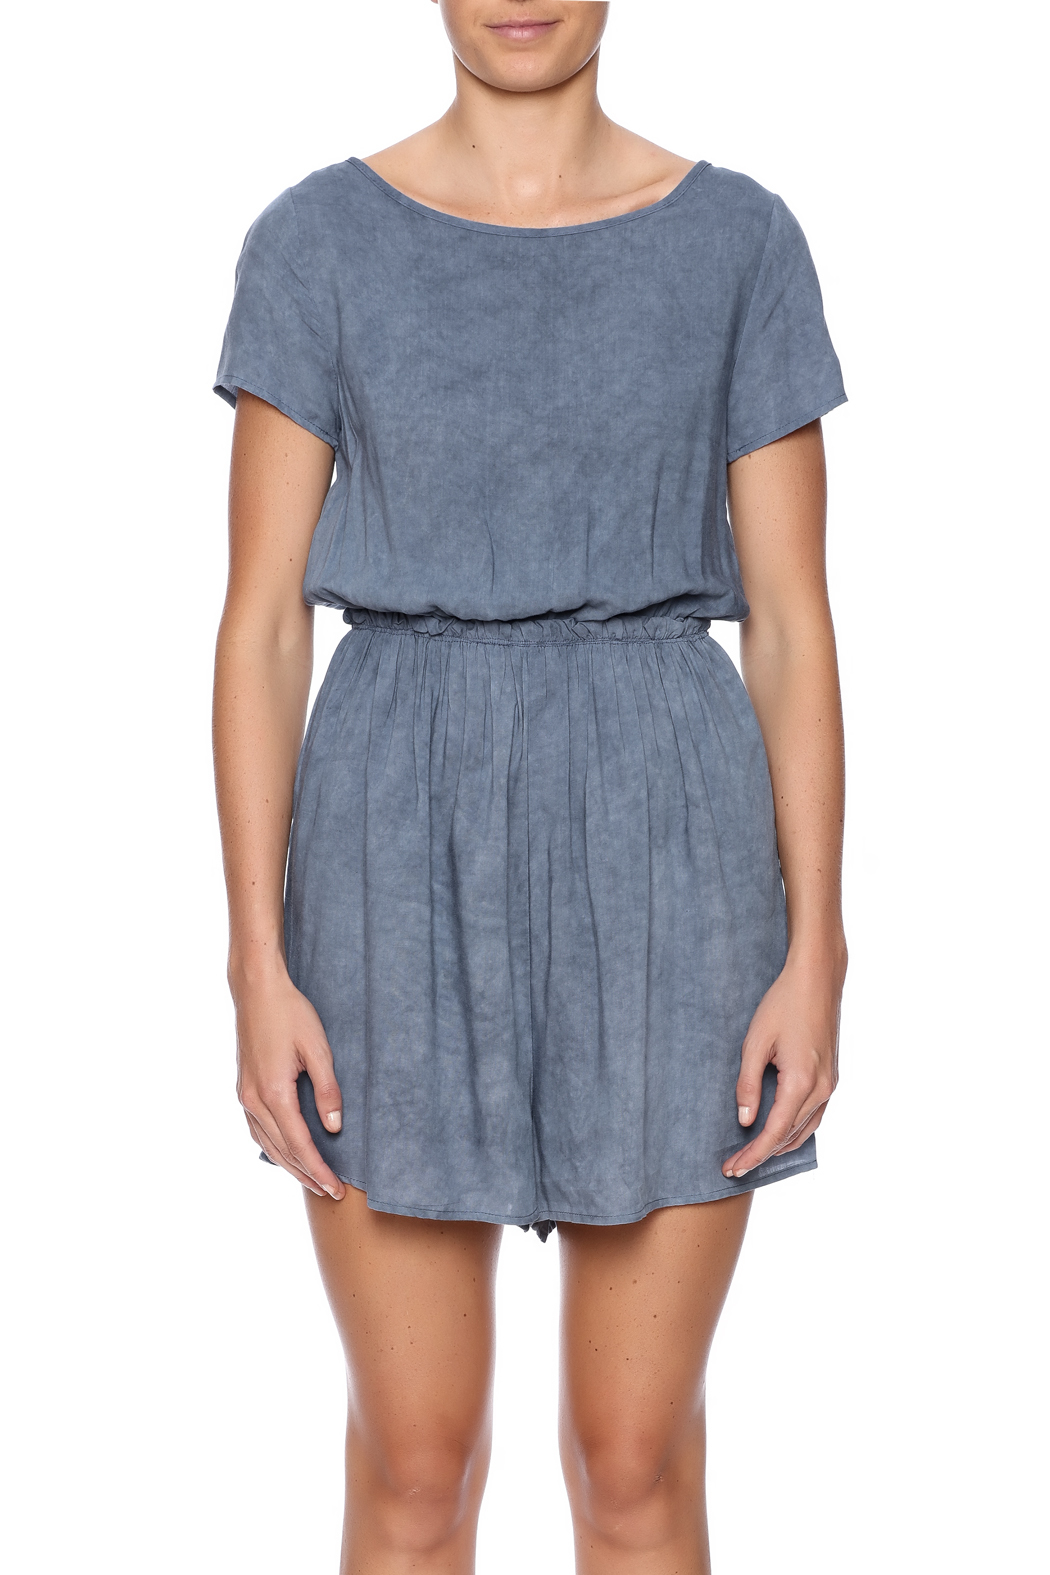 Jella Couture Washed Denim Romper - Side Cropped Image